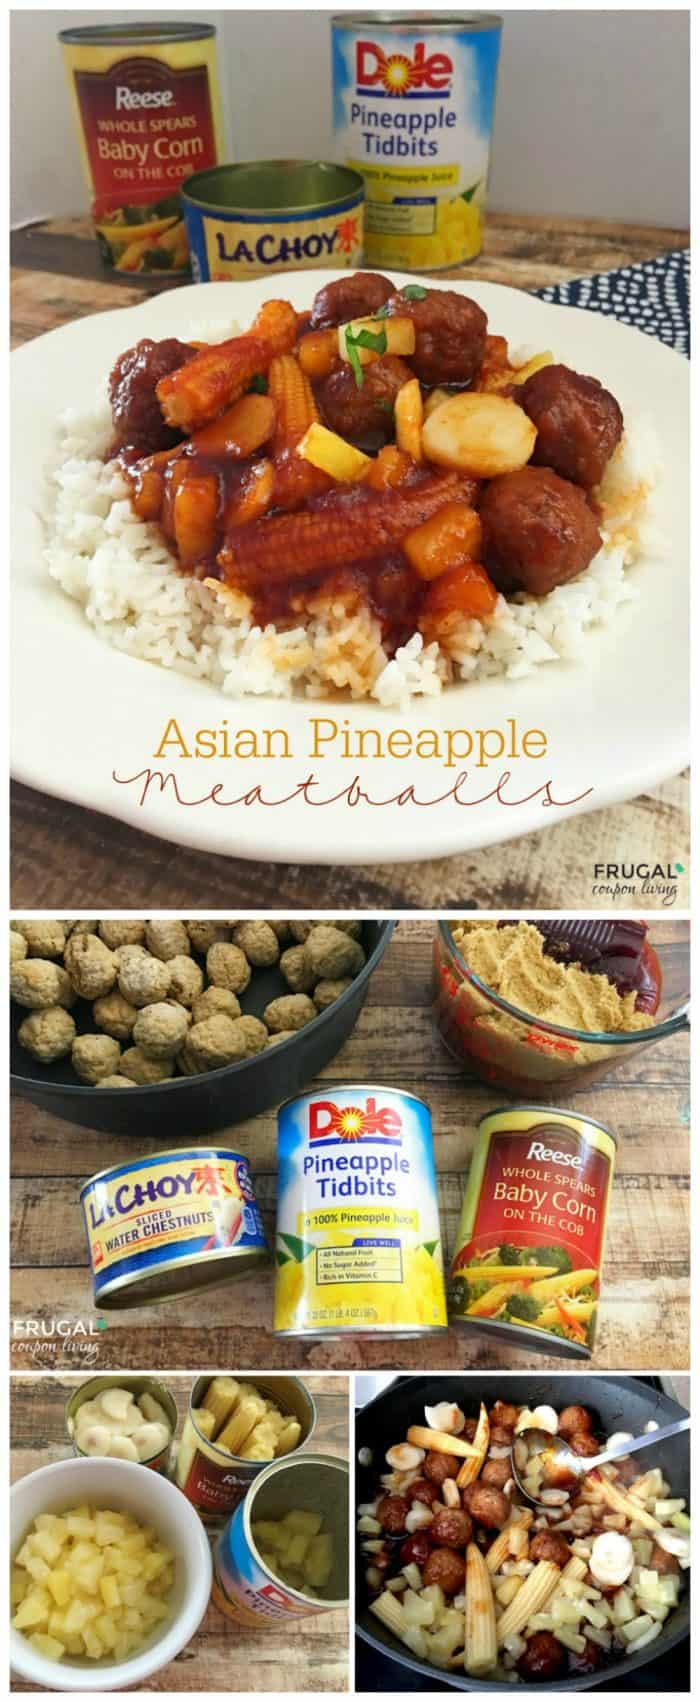 Asian-Pineapple-Meatballs-Recipe-pinterest-Frugal-Coupon-Living